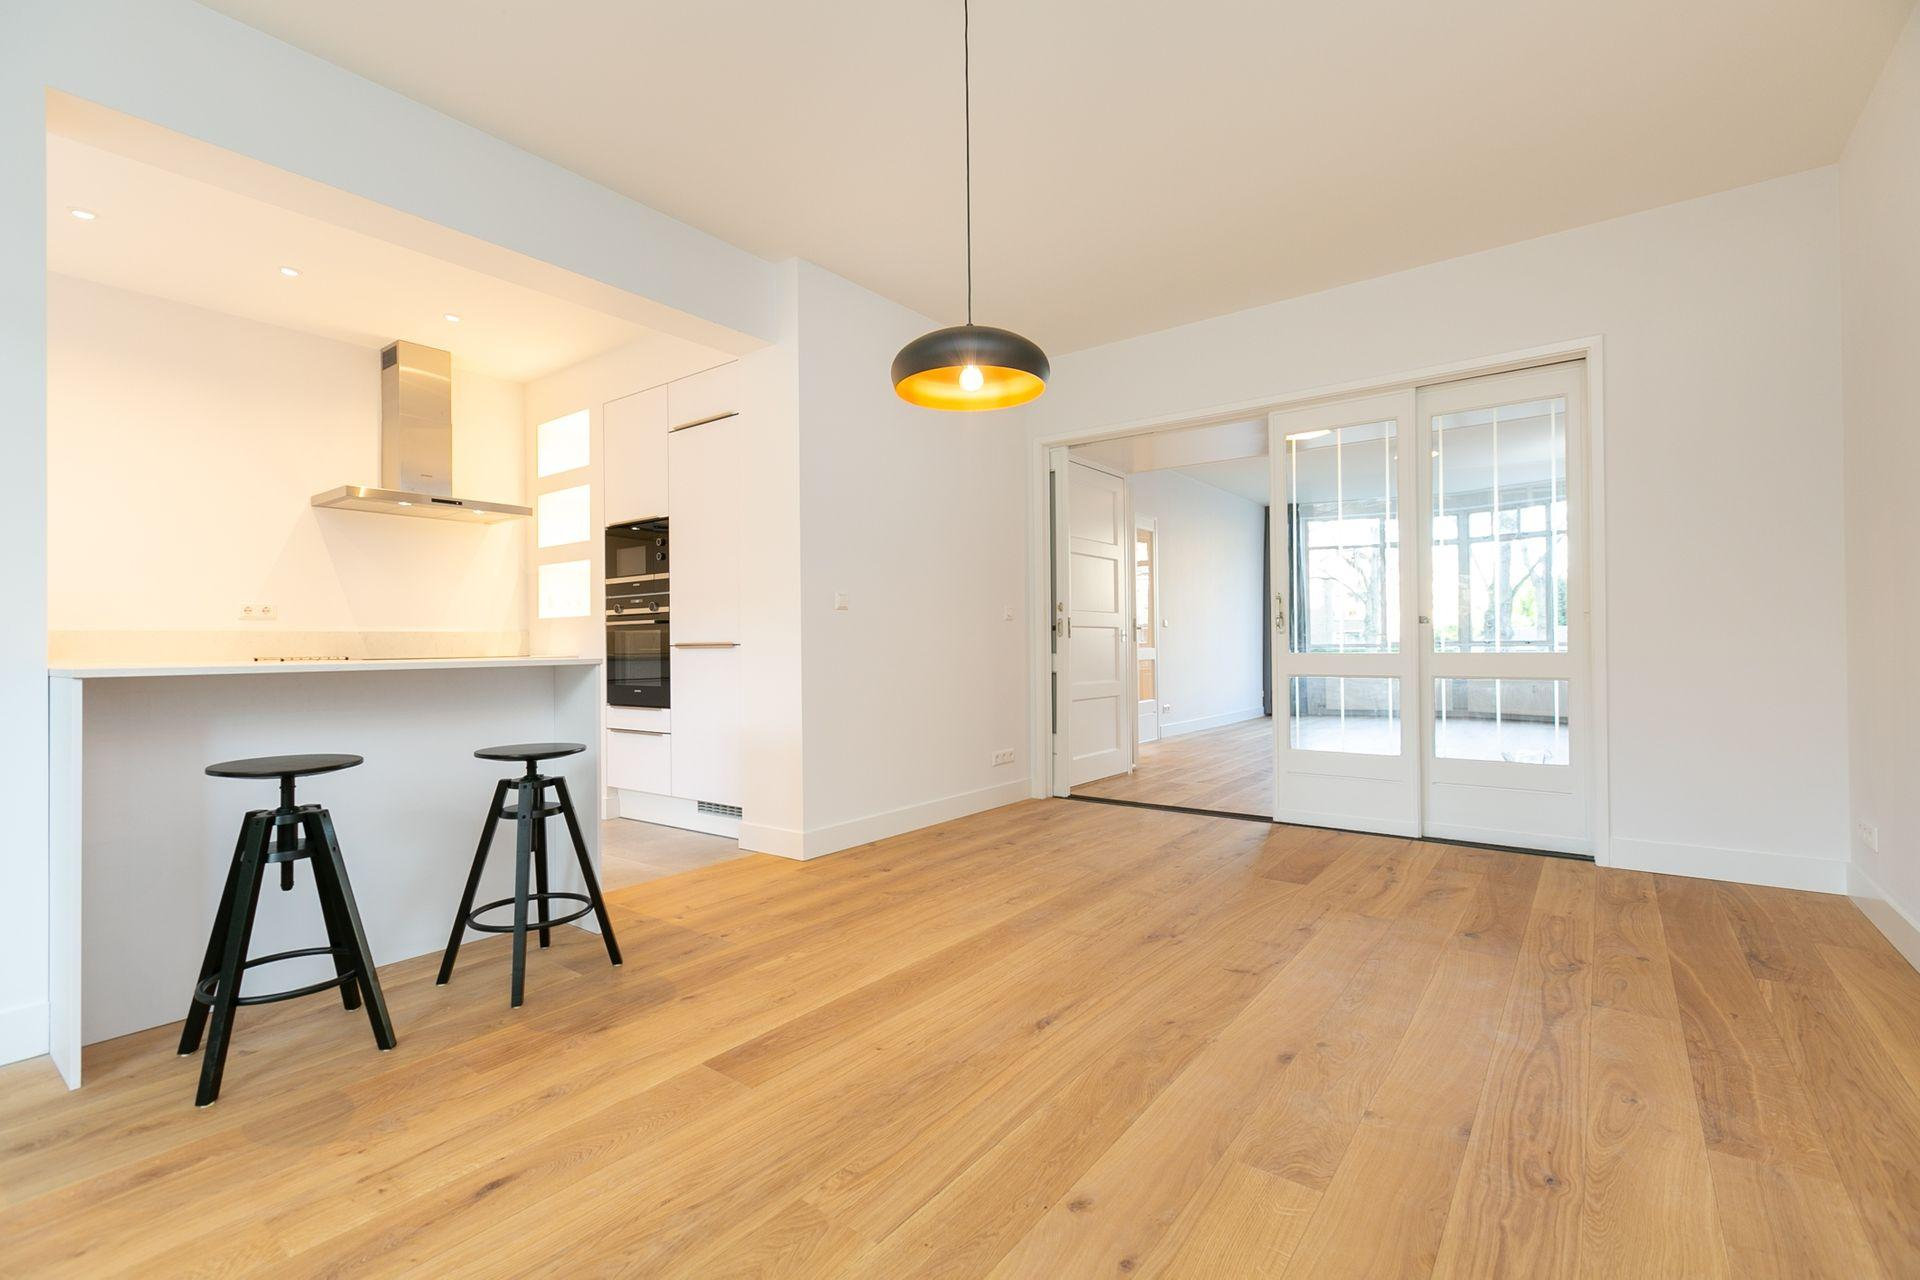 Bekijk de foto van: Laan van Clingendael 154, 2597 CH in Den haag - The Hague Real Estate Services